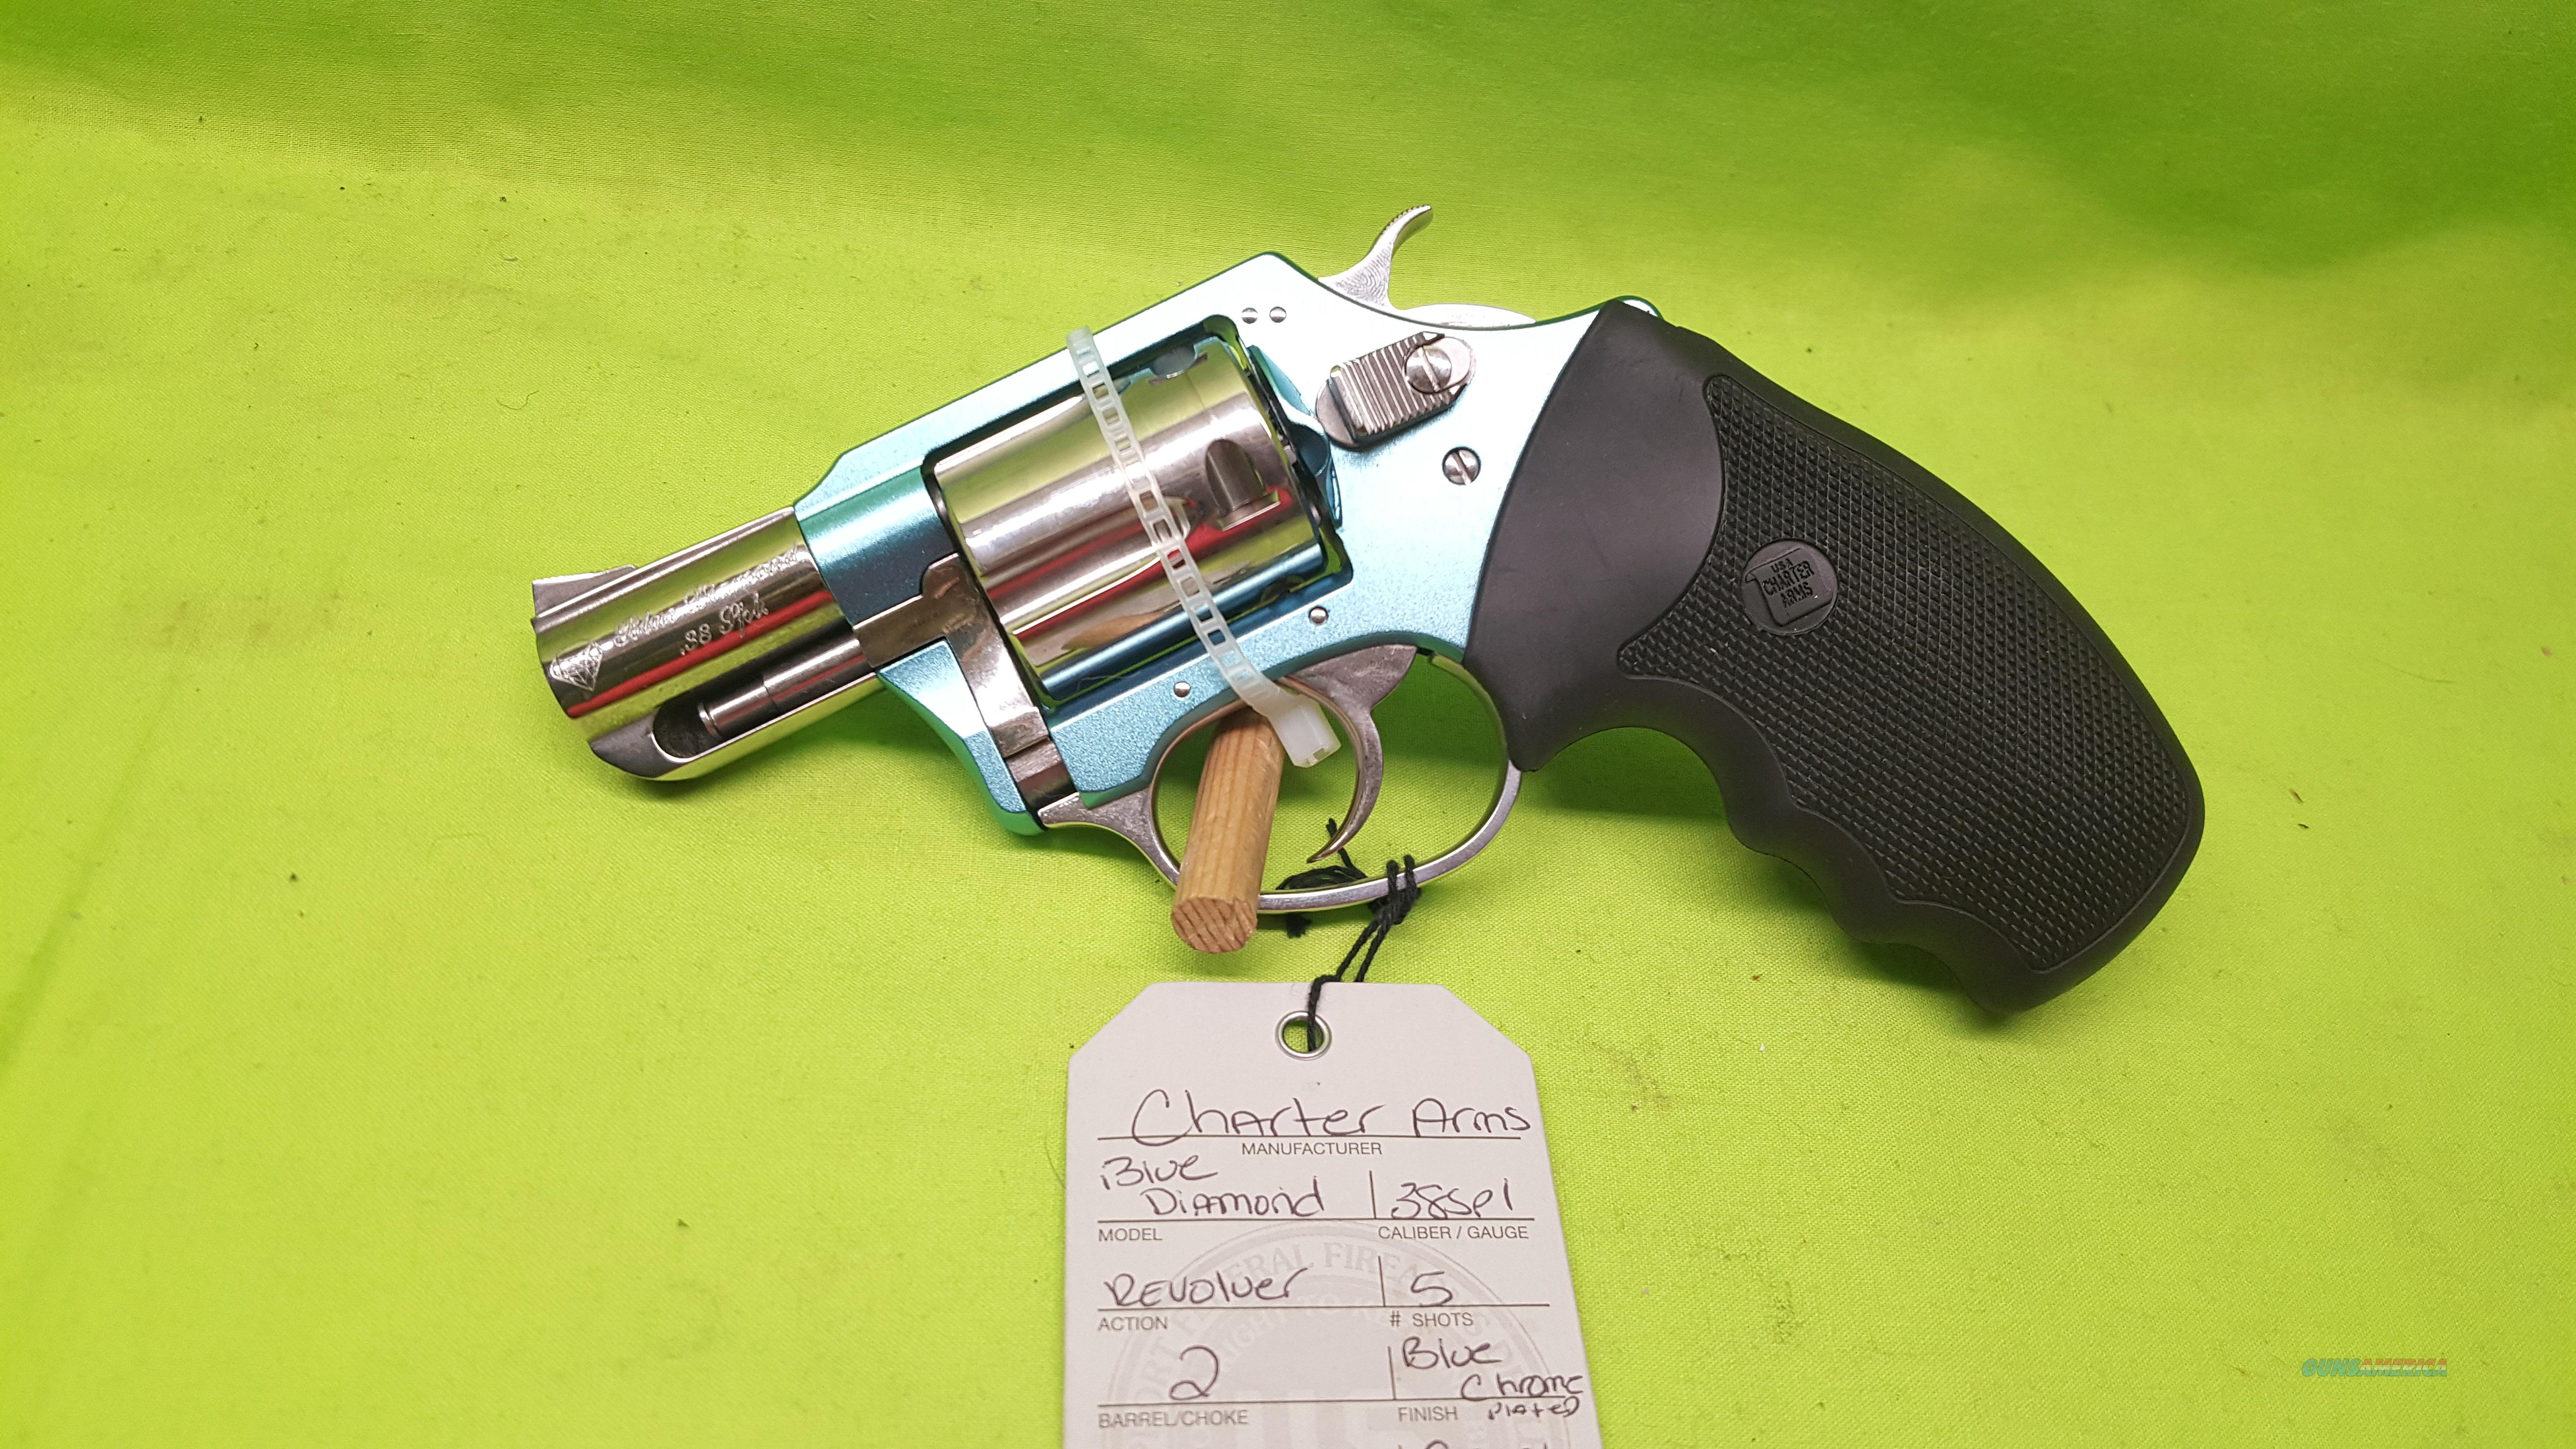 CHARTER ARMS BLUE DIAMOND CHROME 38SPL TIFFANY COLOR  Guns > Pistols > Charter Arms Revolvers